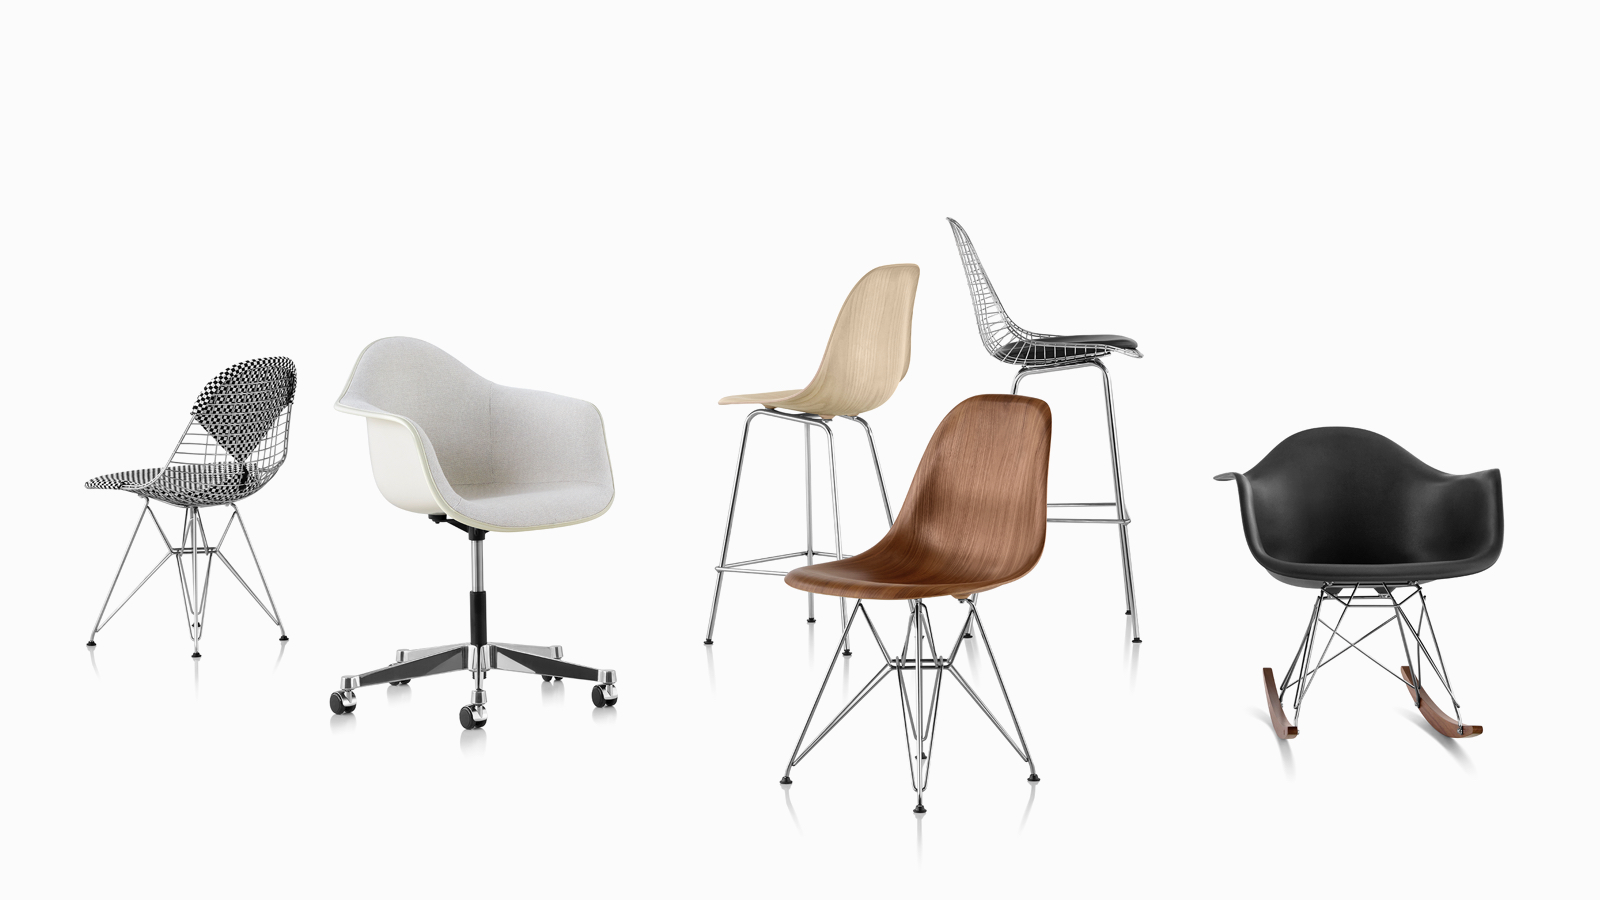 A casual arrangement of Eames shell chairs and stools in fiberglass, wire, wood, and plastic.